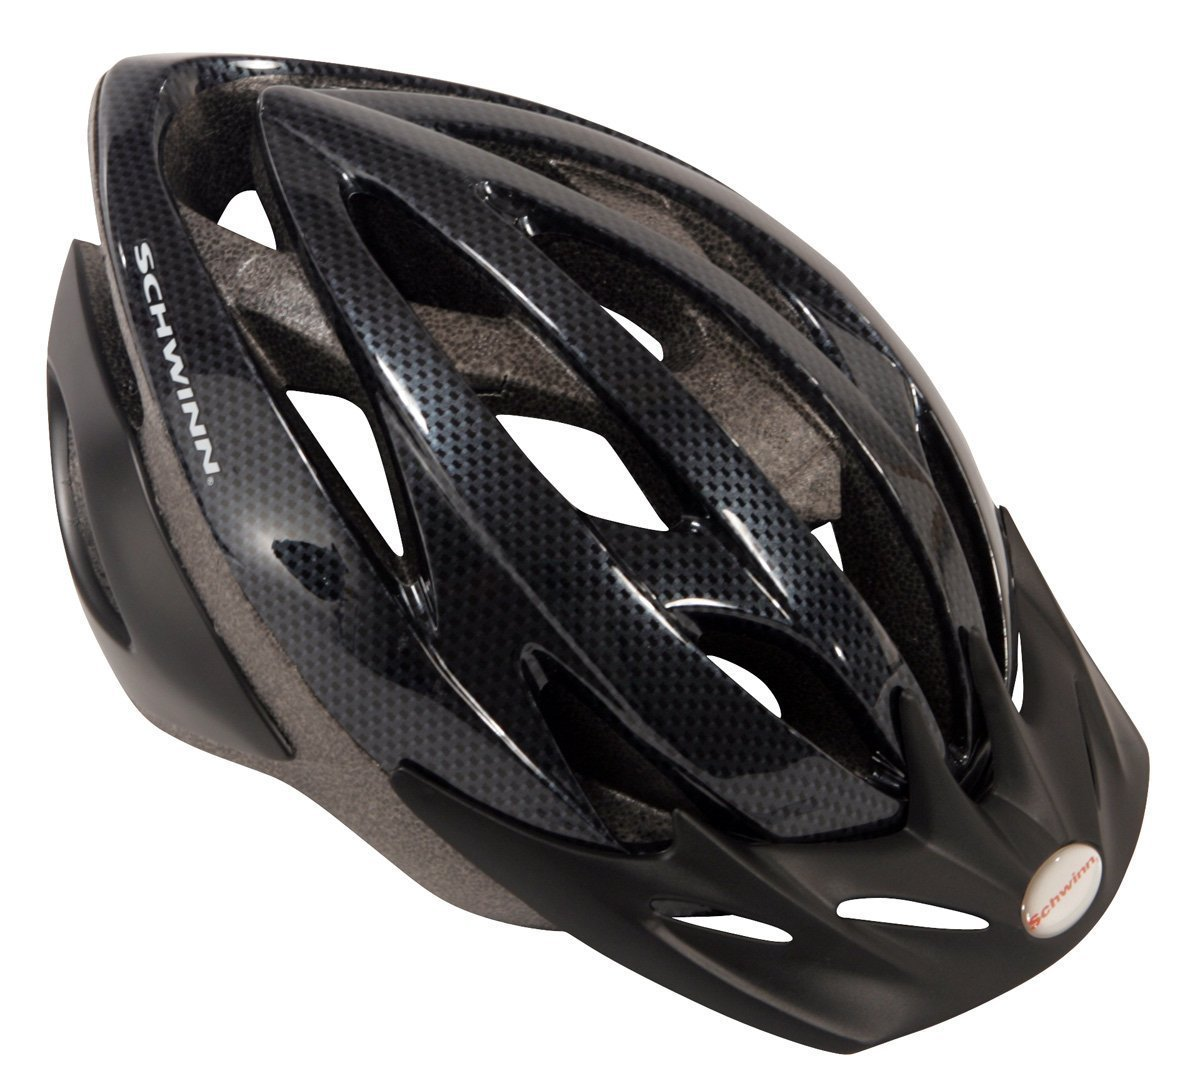 Black Schwinn Bicycle Helmets